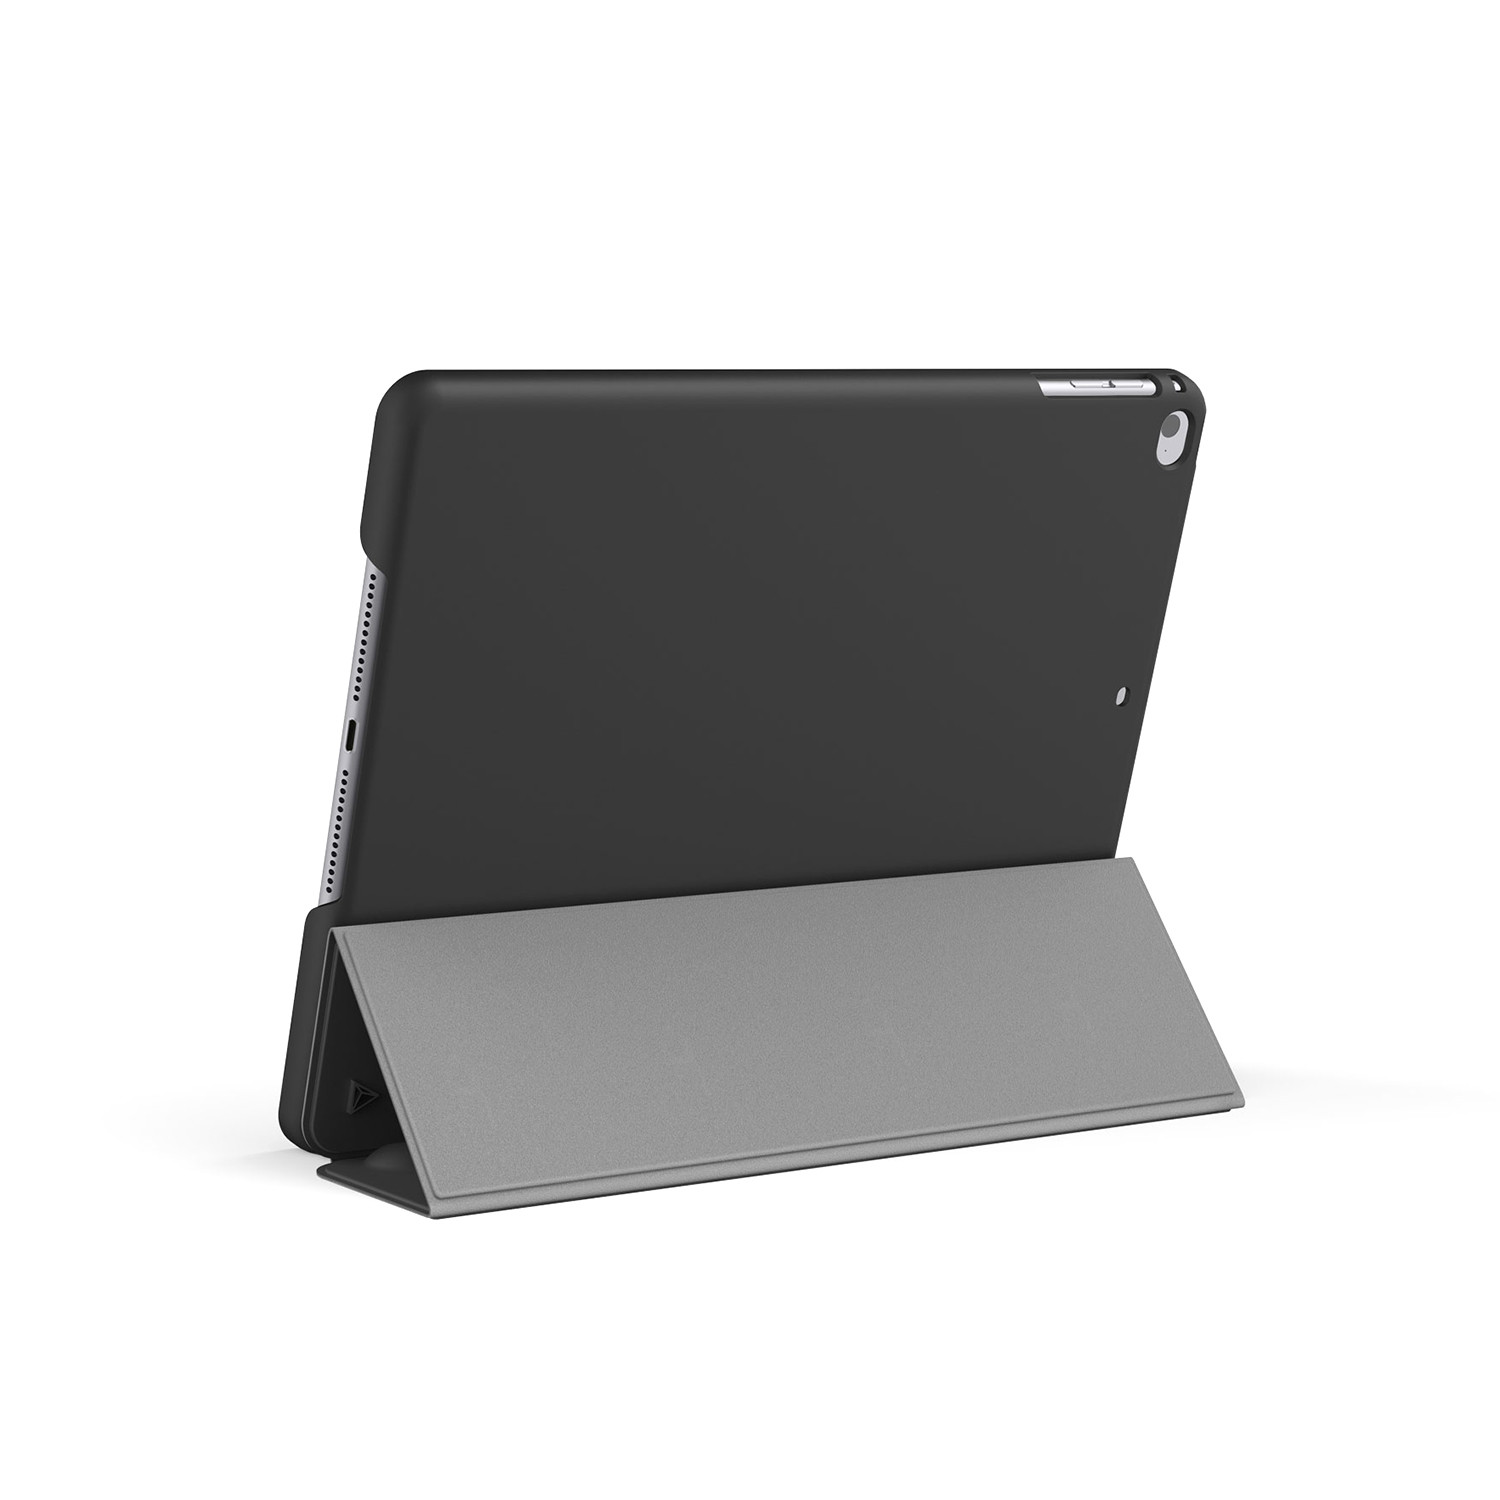 The Best iPad Cases | PCMag.com